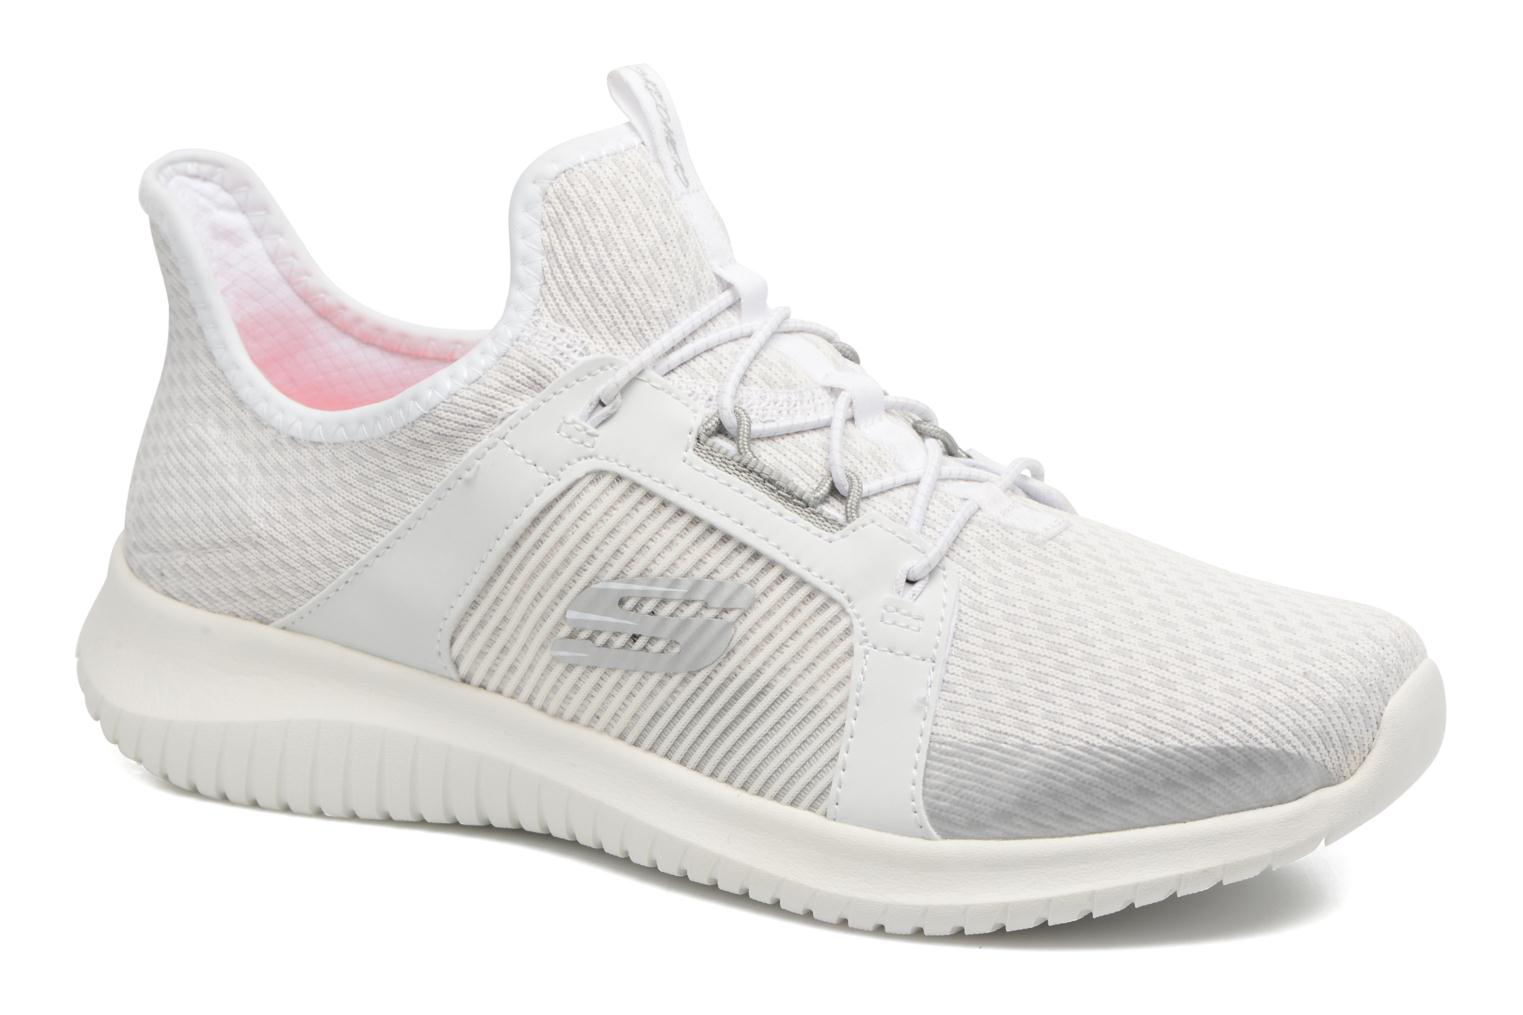 Skechers Ultra Flex-Jaw Dropper Blanco e5ZMm